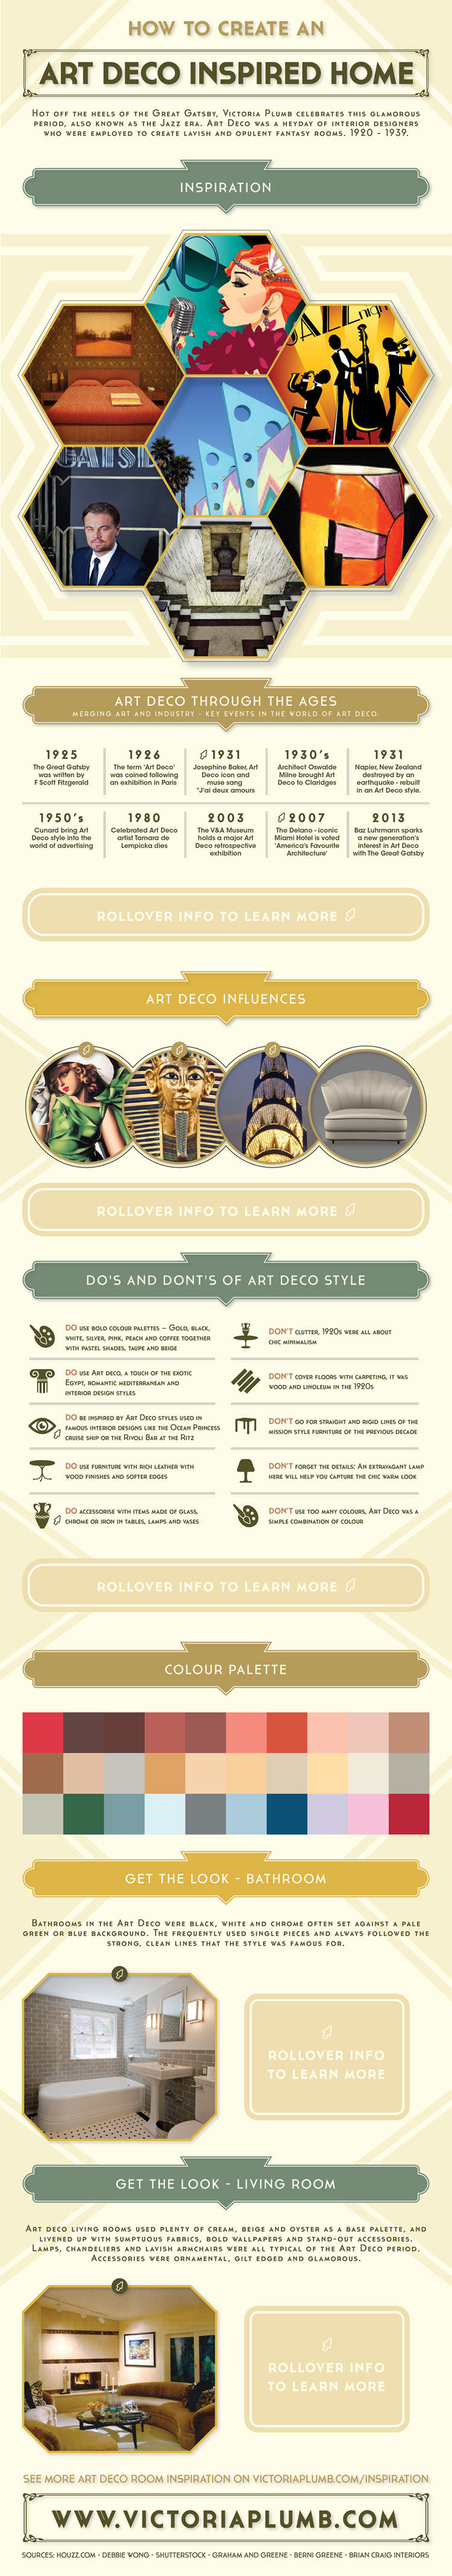 How To Create an Art Deco Inspired Home